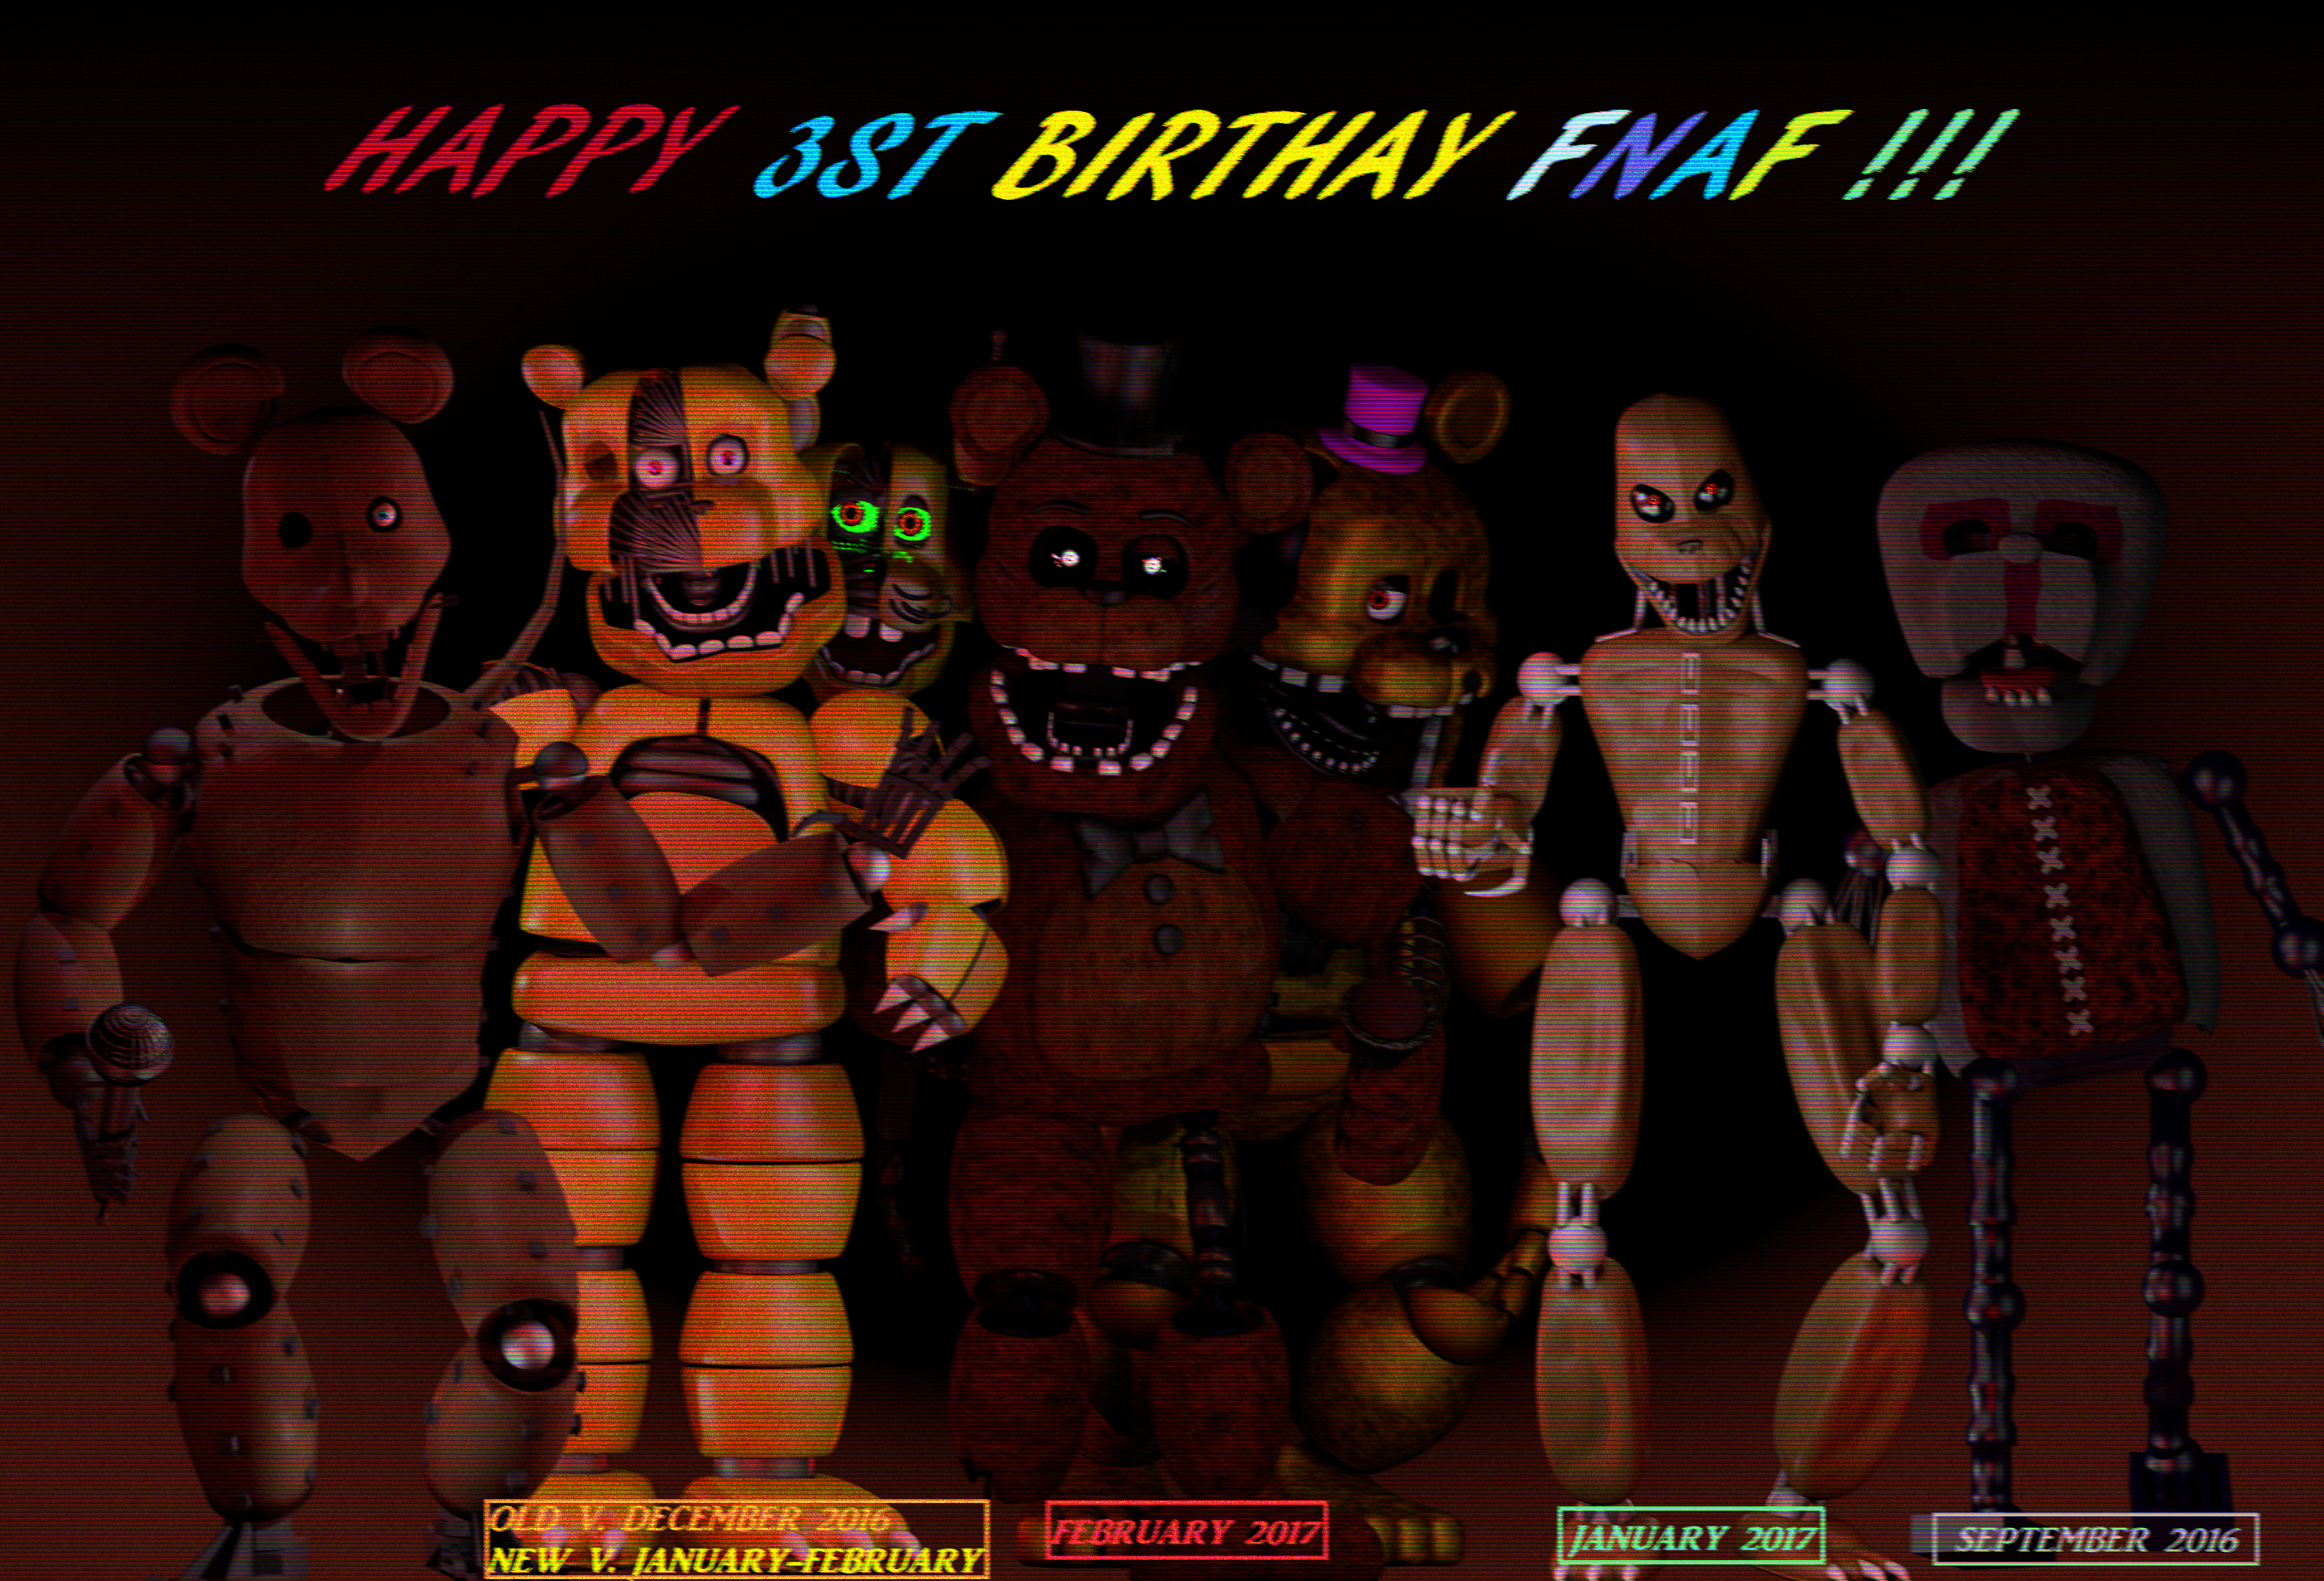 Horror multiplayer retro survival fangame fnaf view all - As I Did Many Games Before This I Have Decided To Put Many Old Games Of Mine The Ones I Enjoy Doing Finally Canceled Or Replaced Well I Will Put You